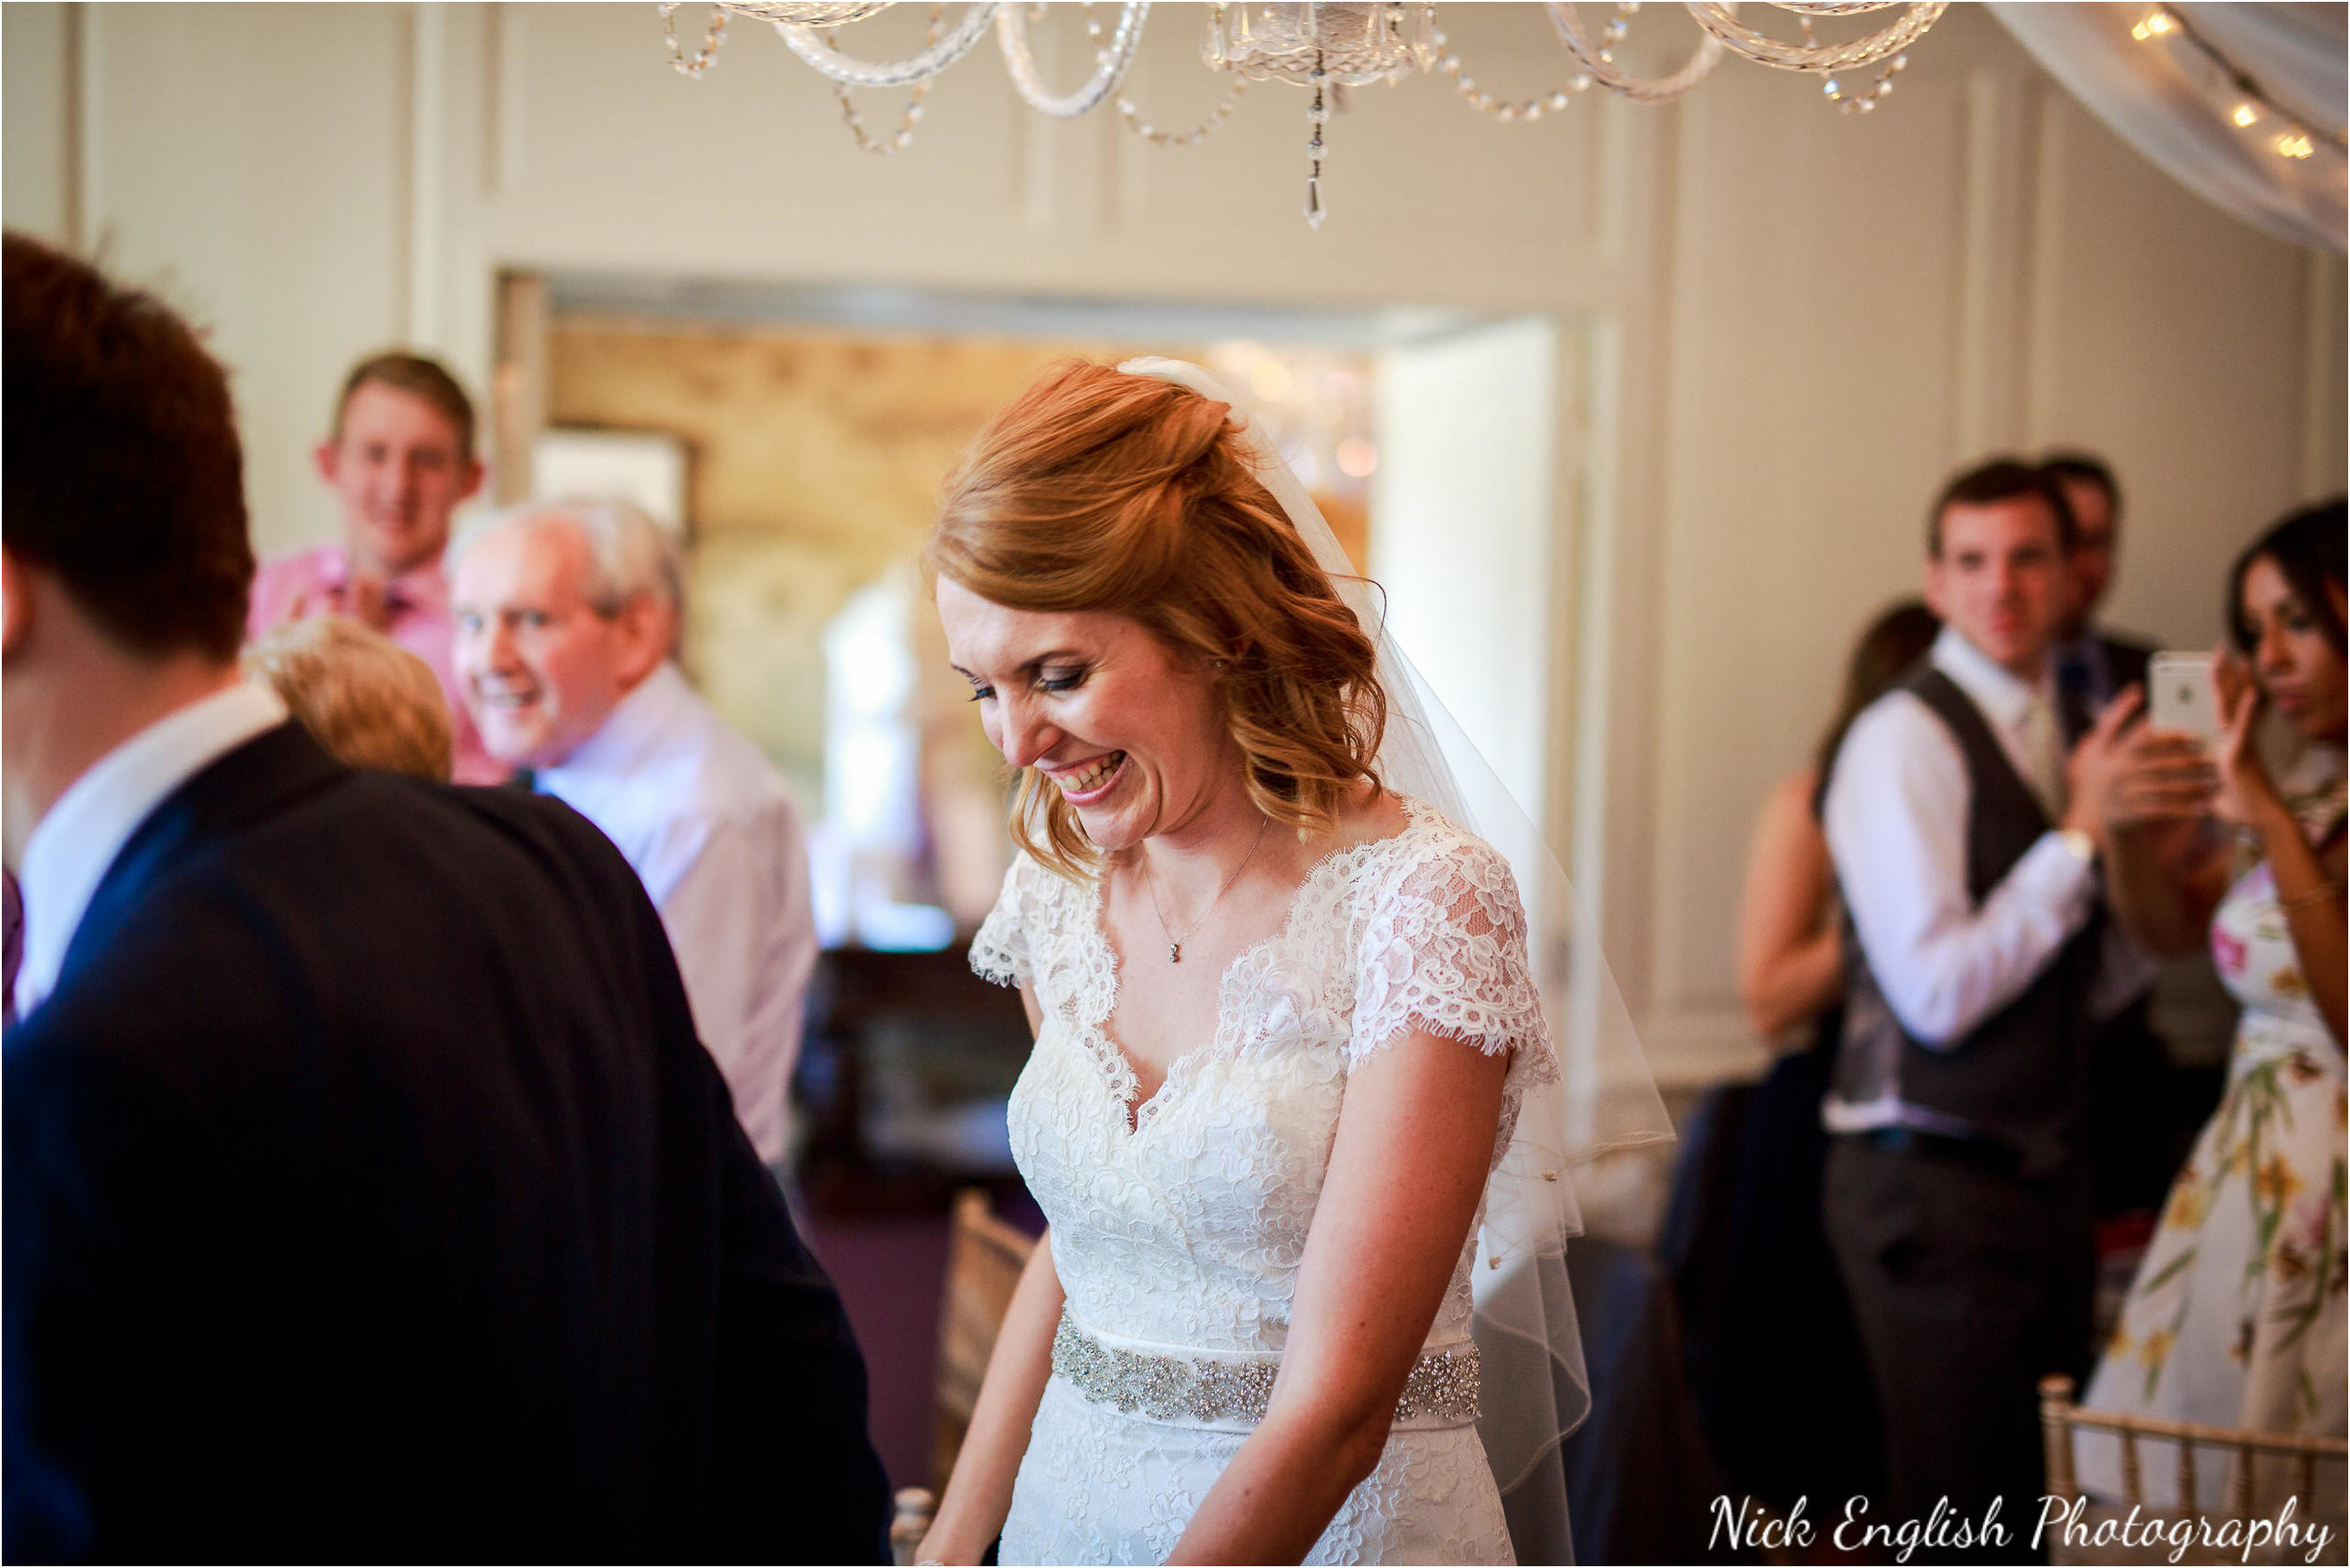 Alison James Wedding Photographs at Eaves Hall West Bradford 163jpg.jpeg